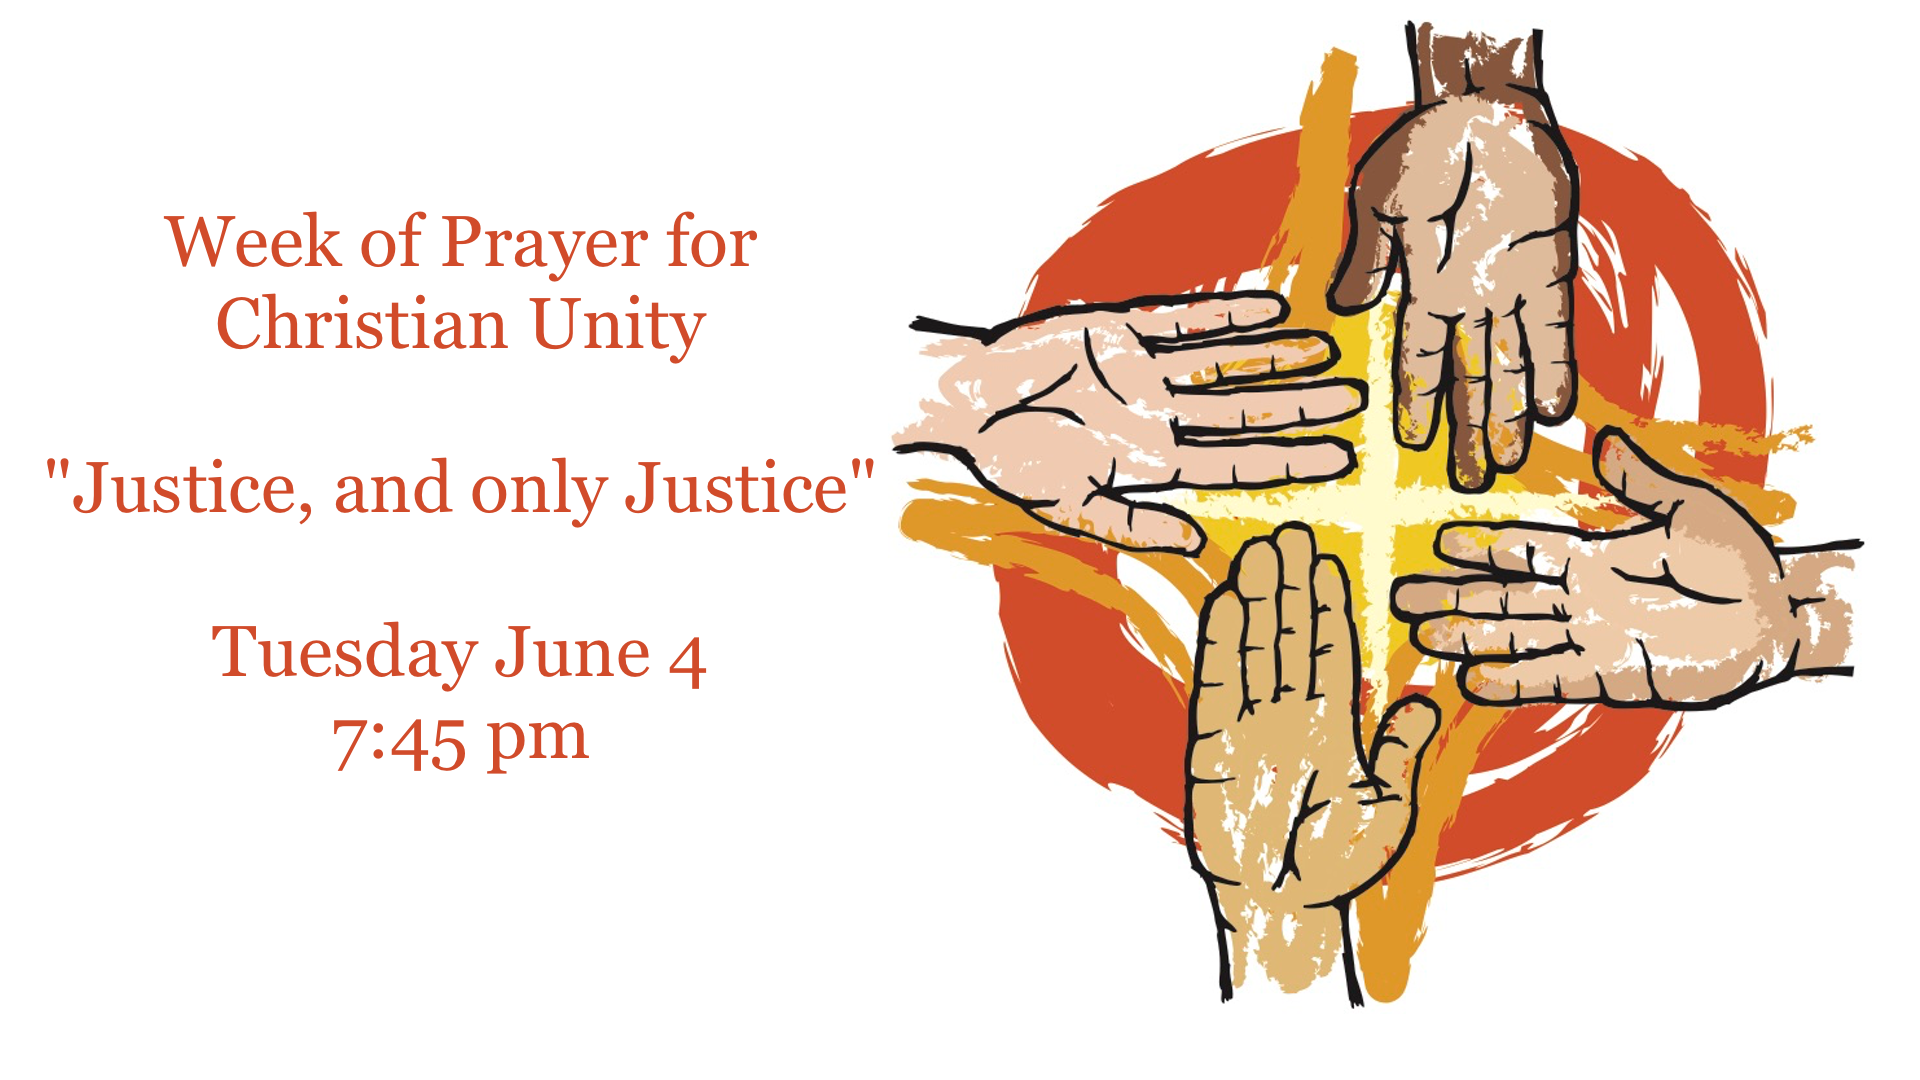 Service for the Week of Prayer for Christian Unity